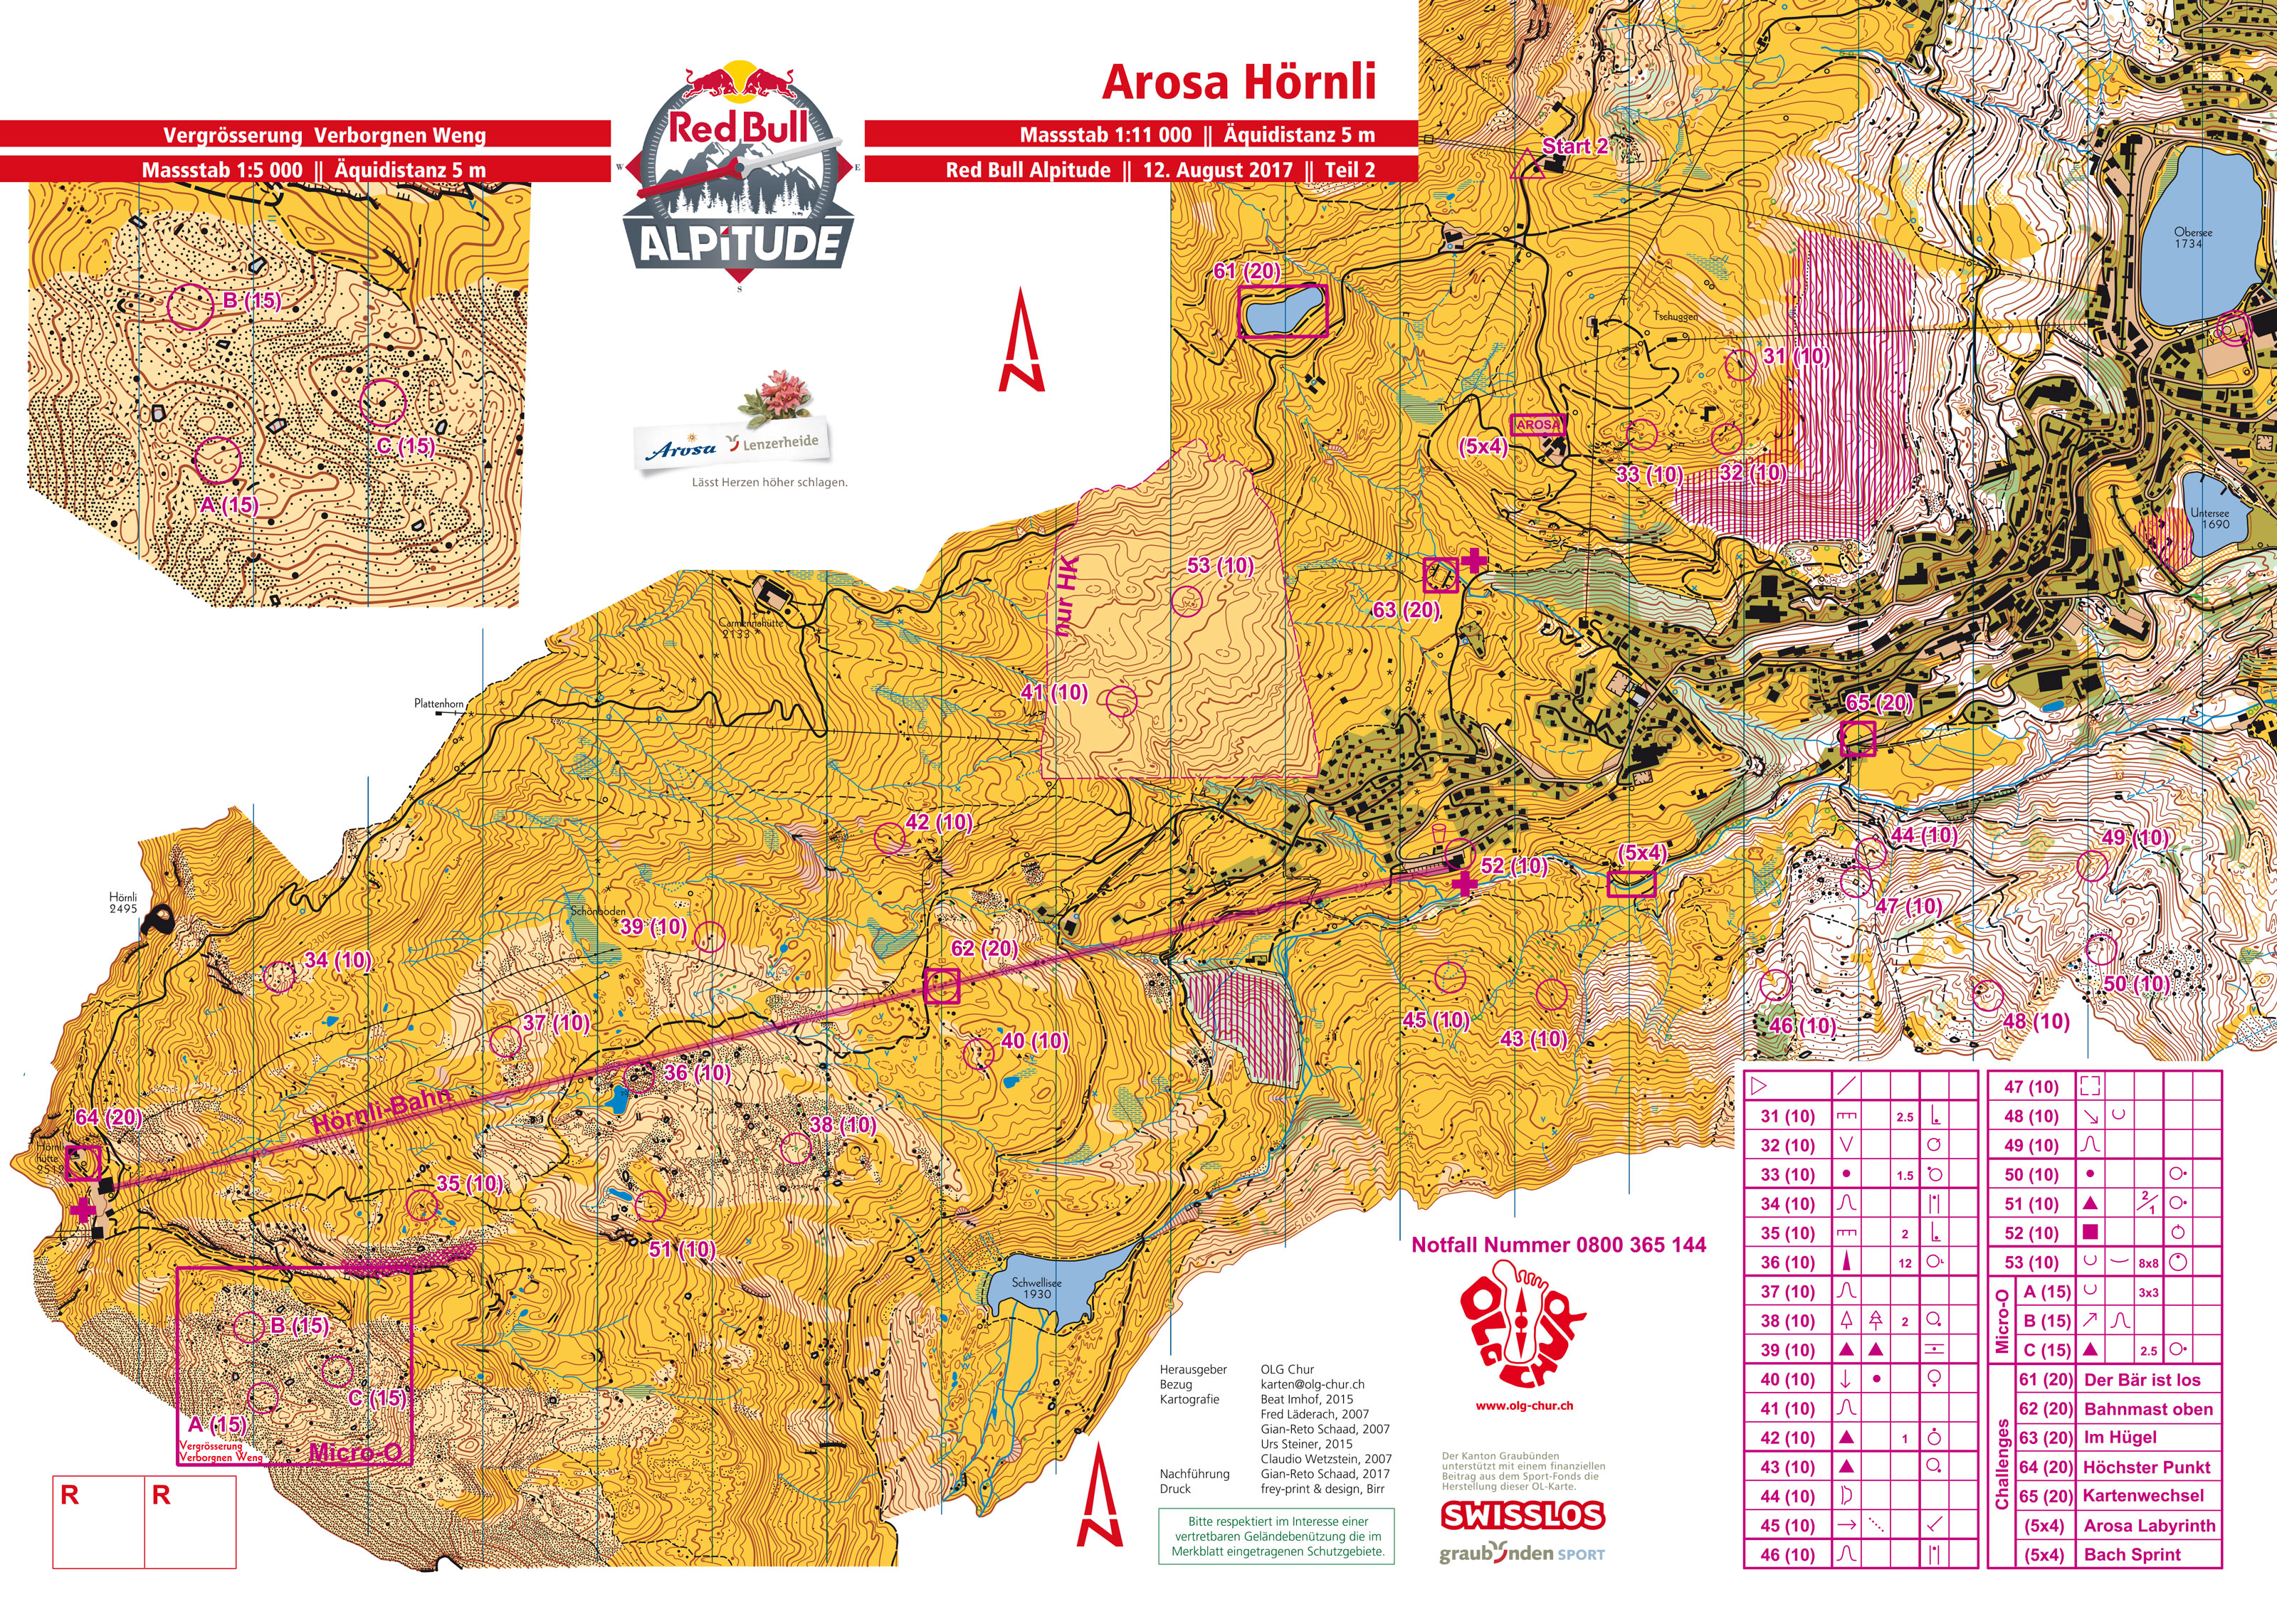 Red bull alpitude 2017 damen teil 2 august 12th 2017 request map deleted gumiabroncs Image collections